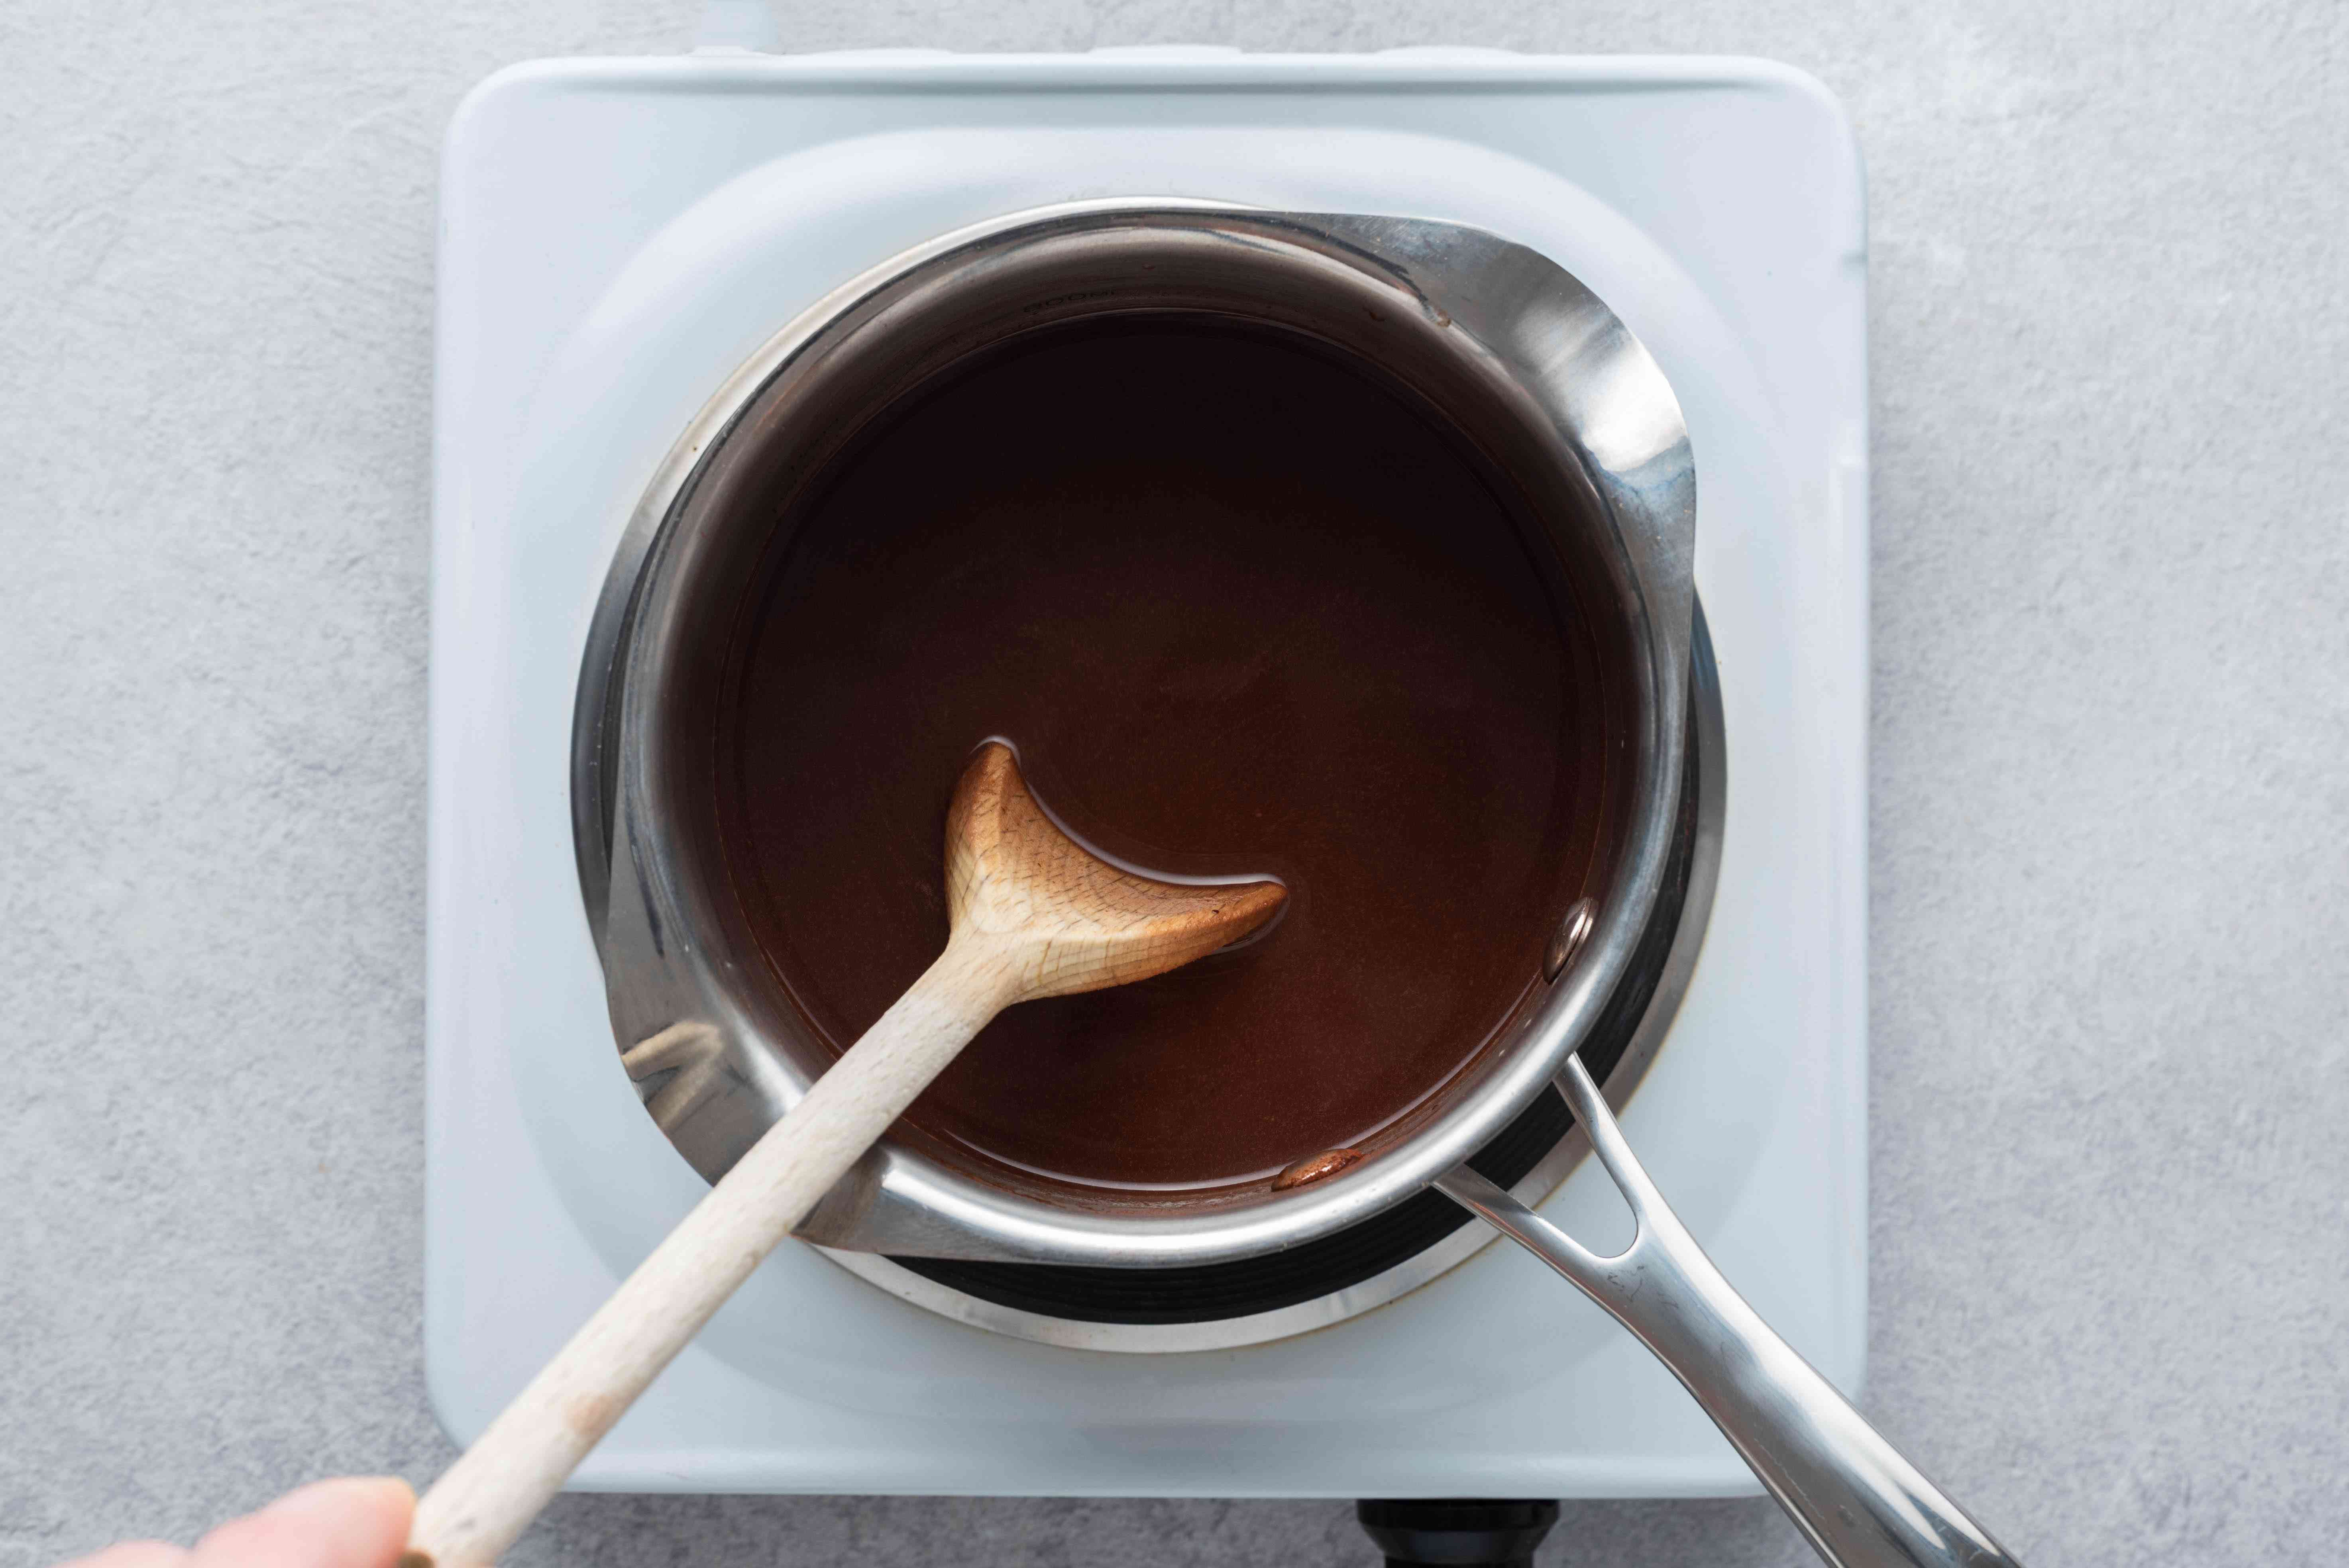 cook the almond milk and cocoa mixture in the saucepan